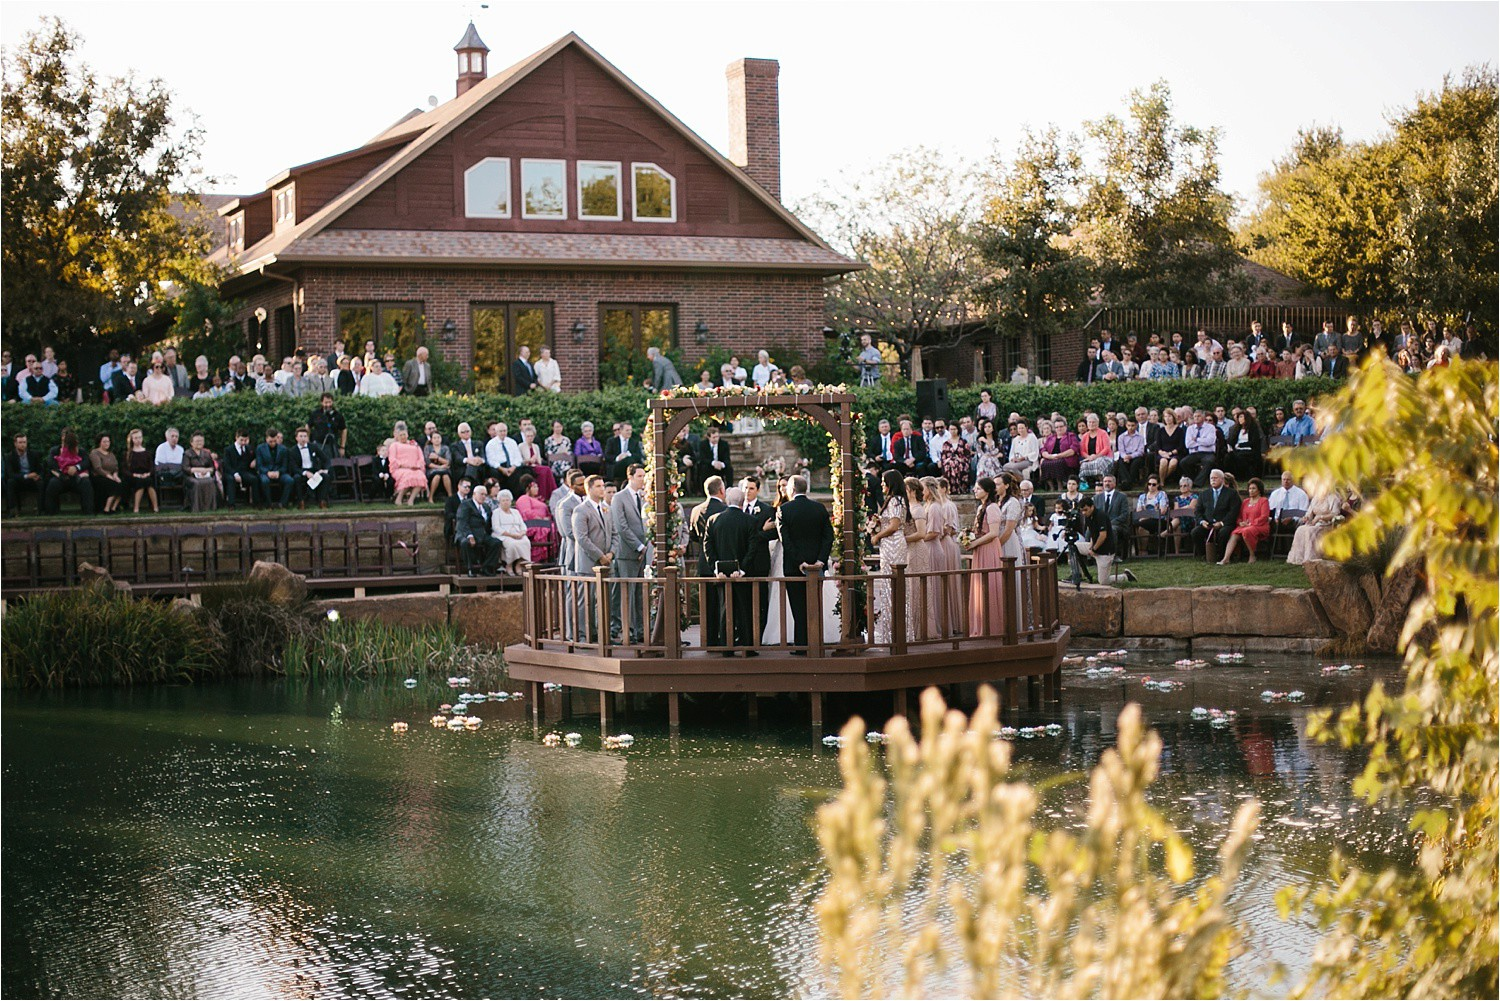 an-elegant-family-ranch-wedding-on-lake-worth-with-burgundy-apricot-and-blush-inspired-decorations-by-north-texas-wedding-photographer-rachel-meagan-photography-_-28